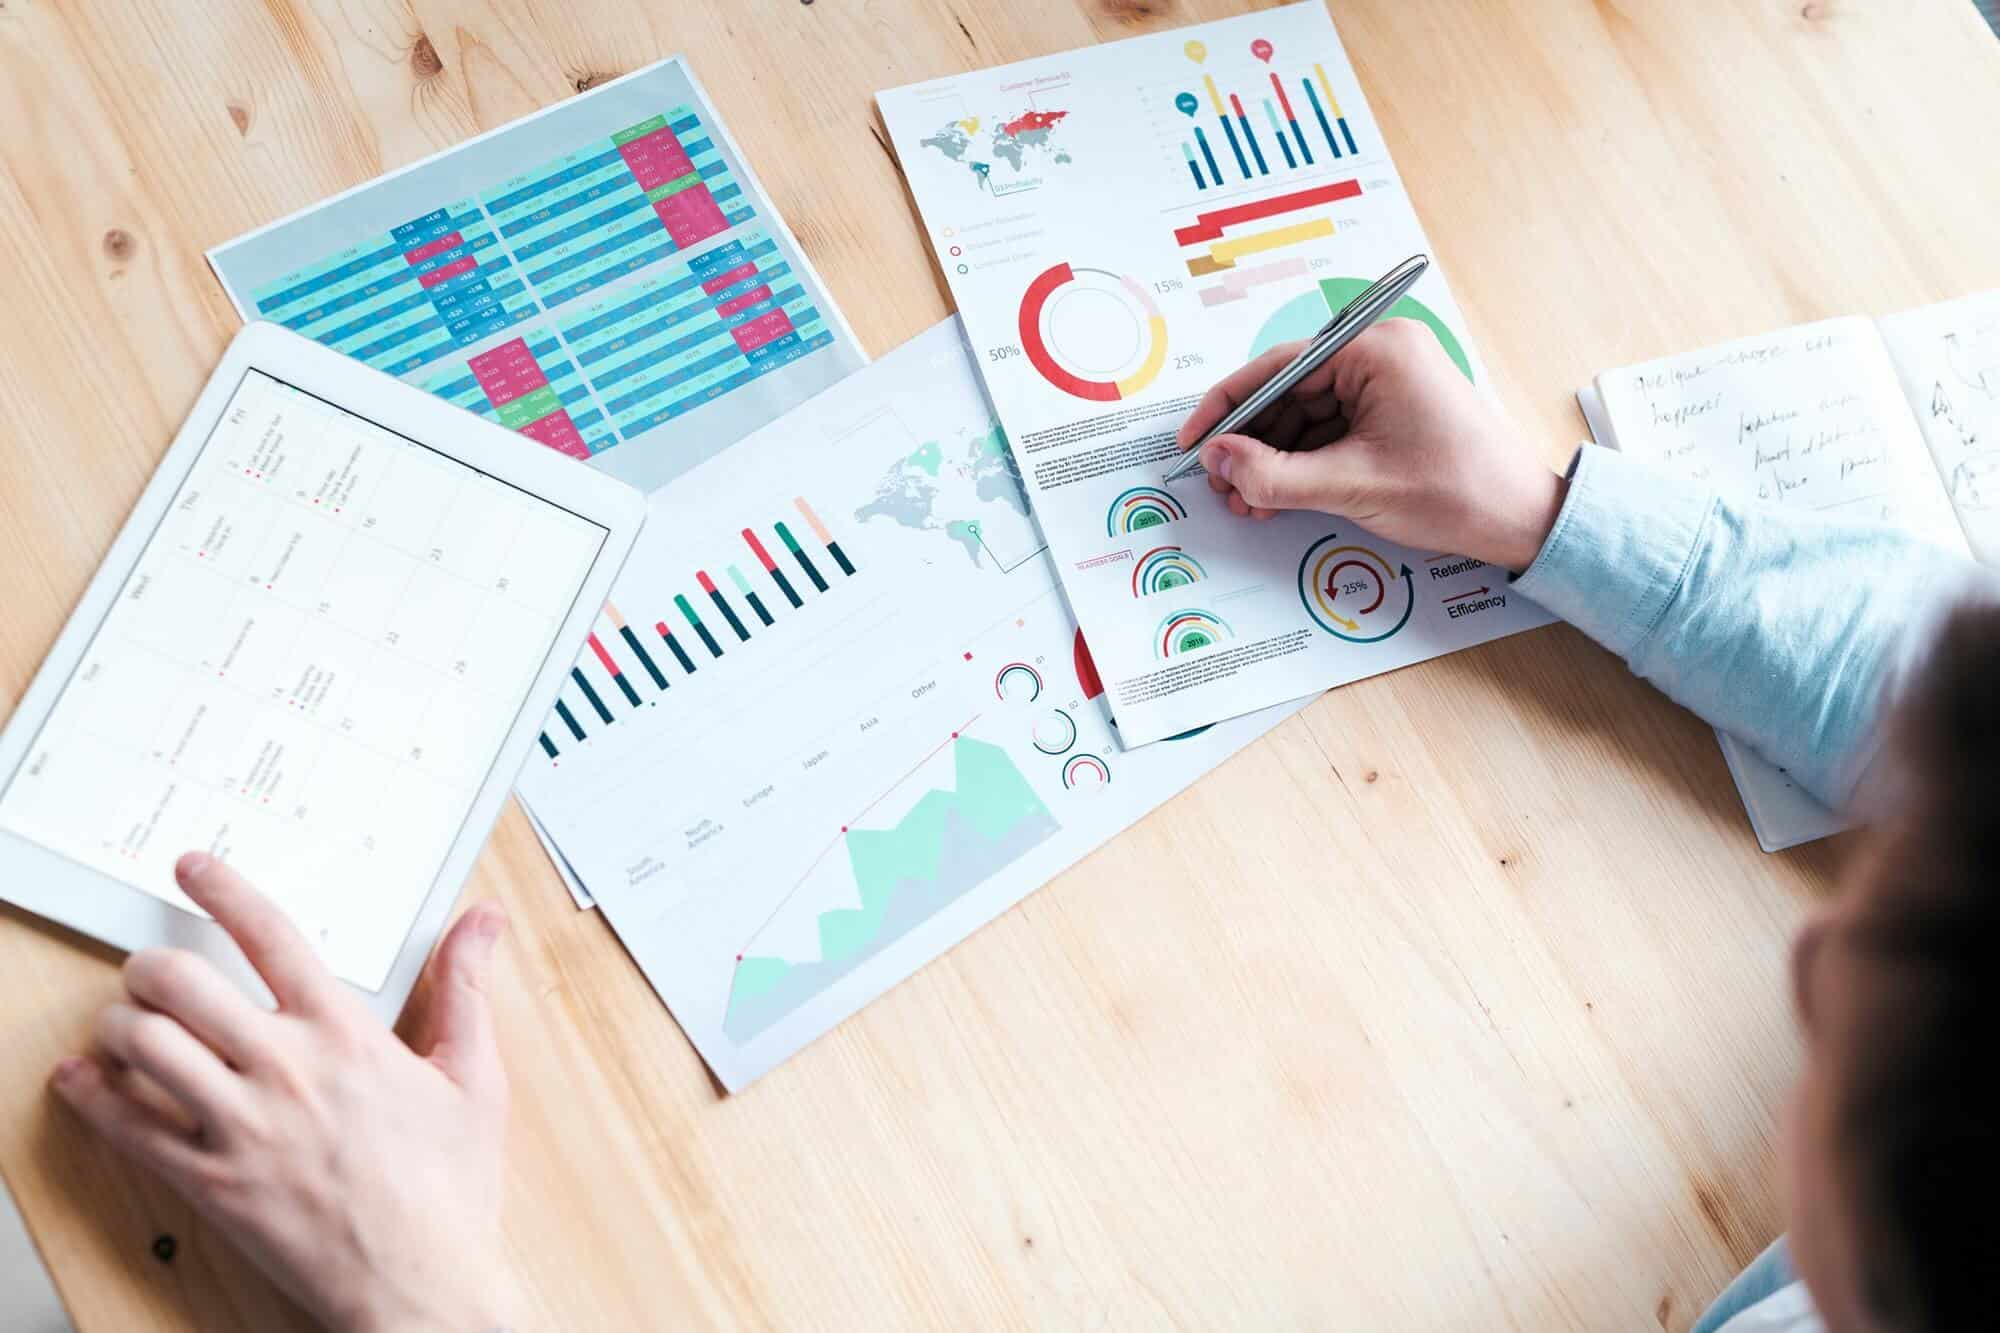 Complete data visibility and insights